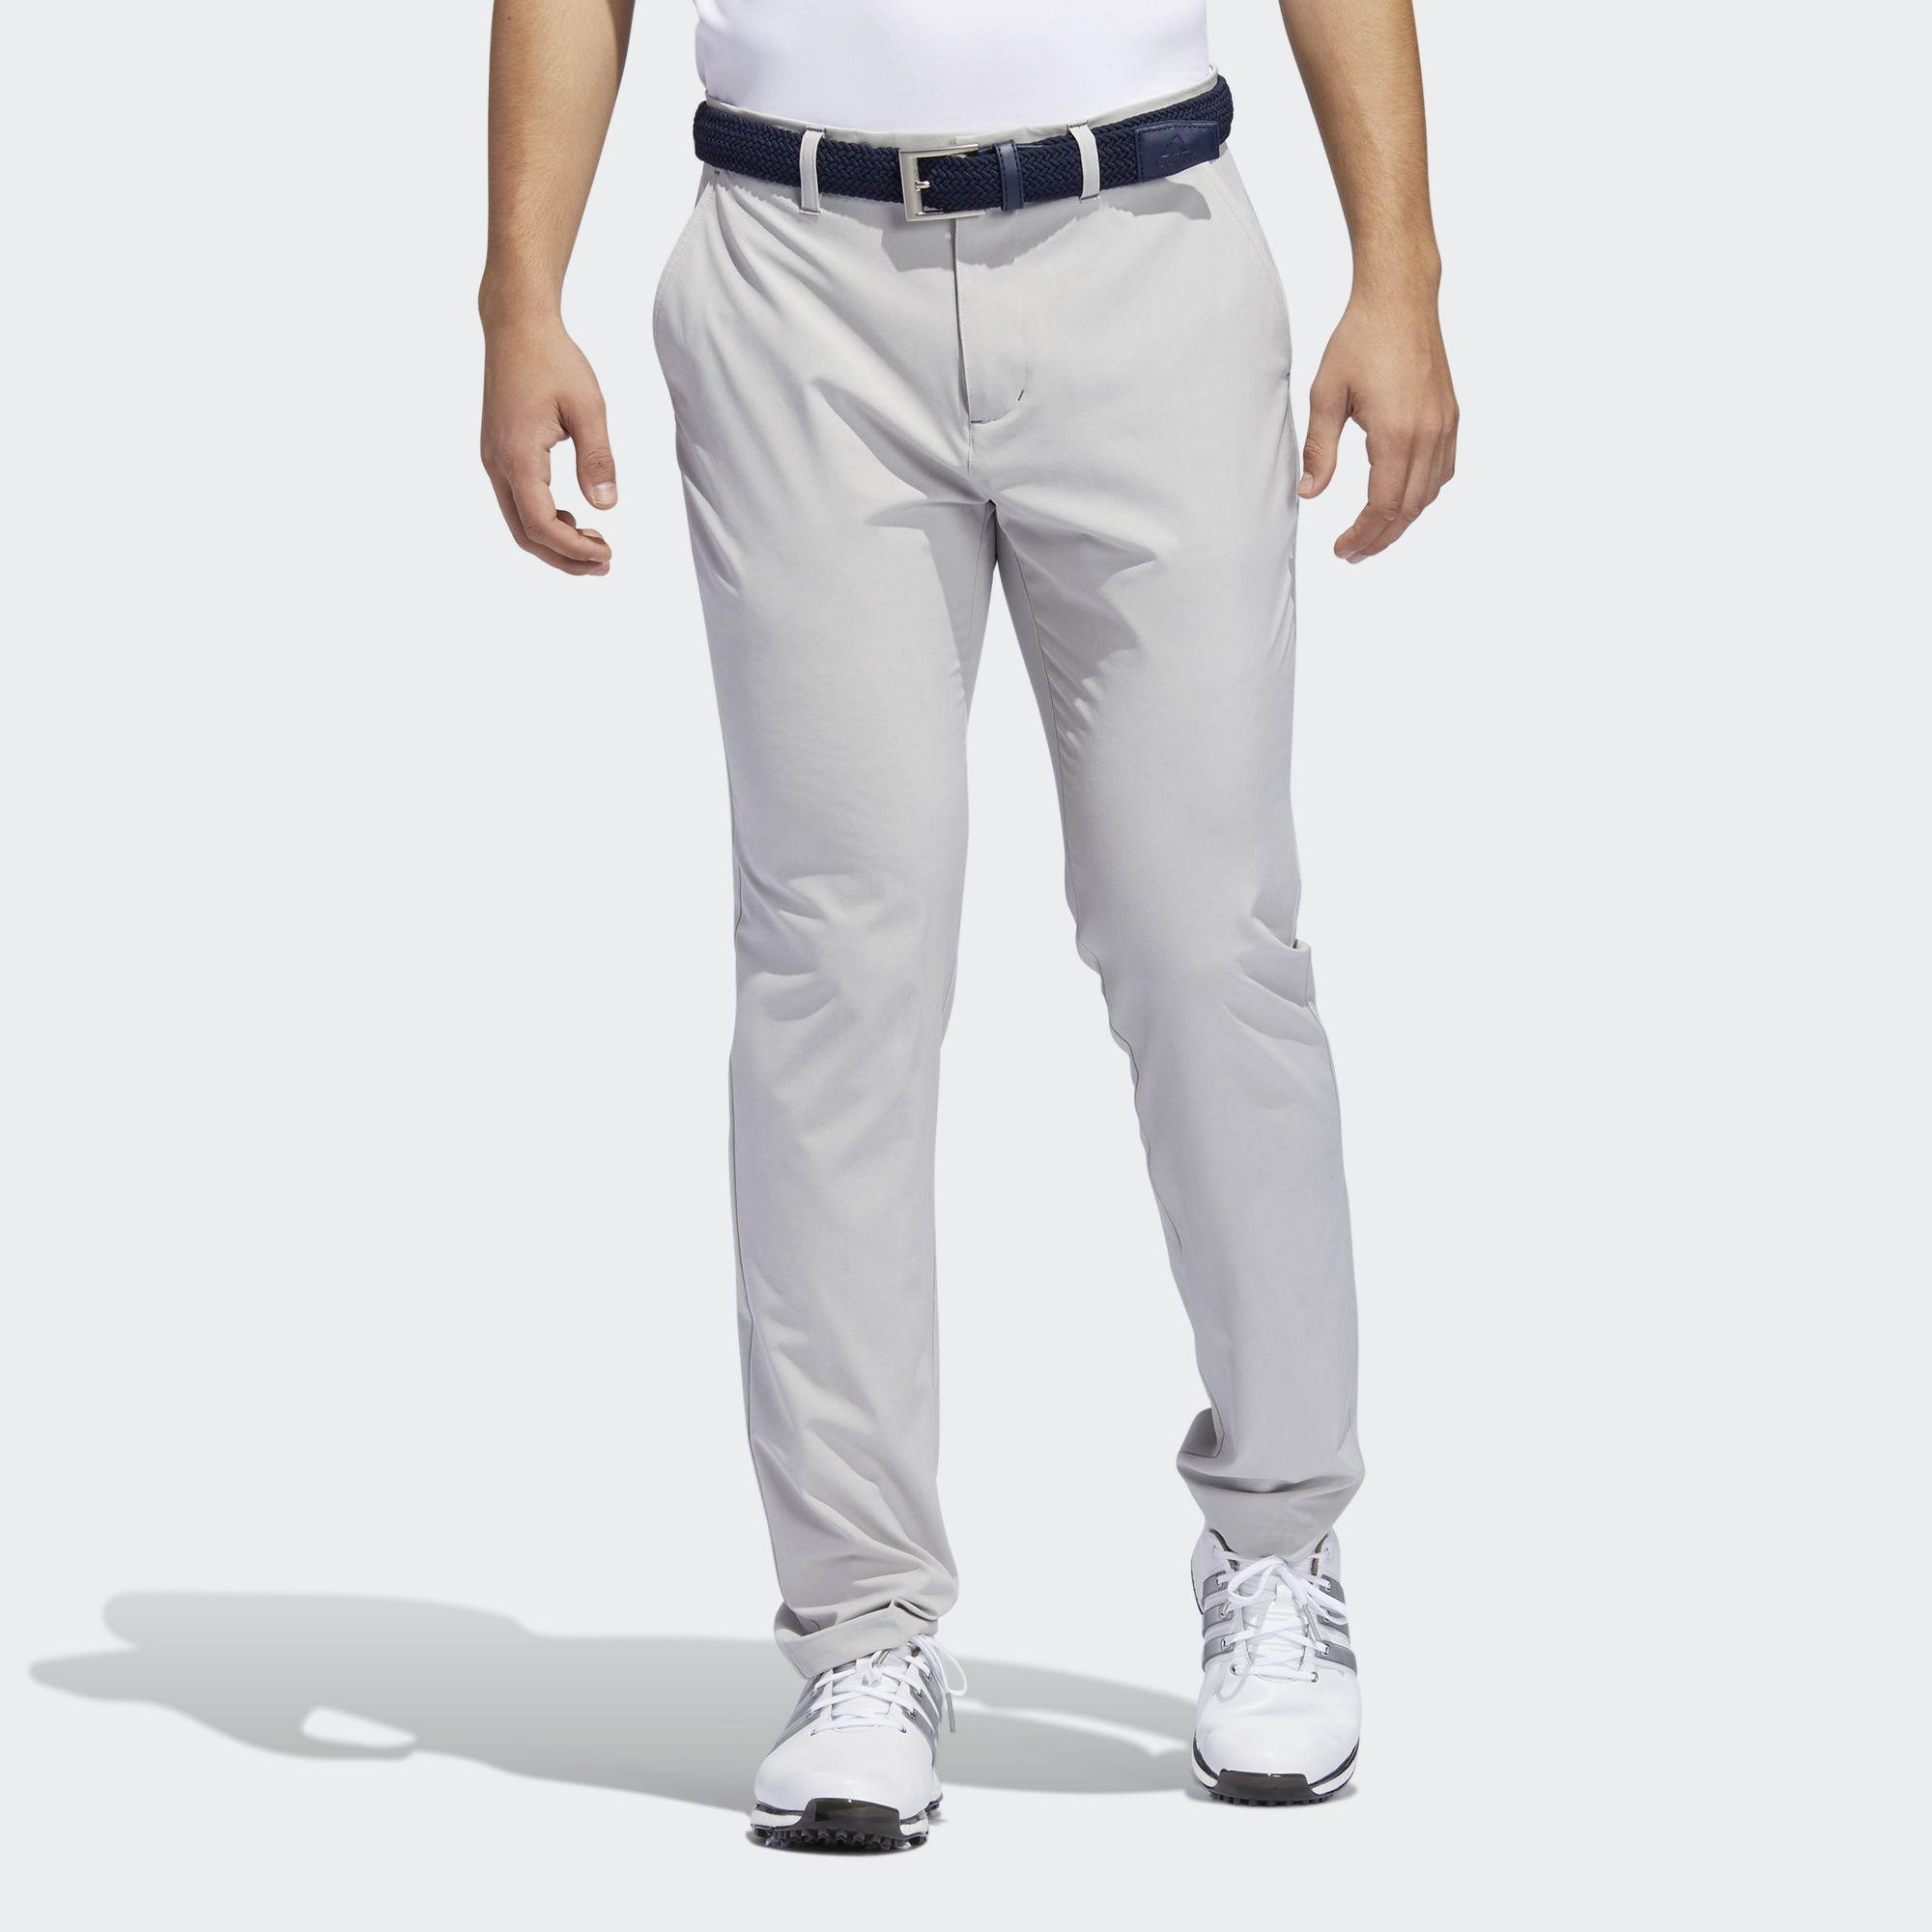 bacb18203 adidas Ultimate365 Tapered Pants in Gray for Men - Lyst